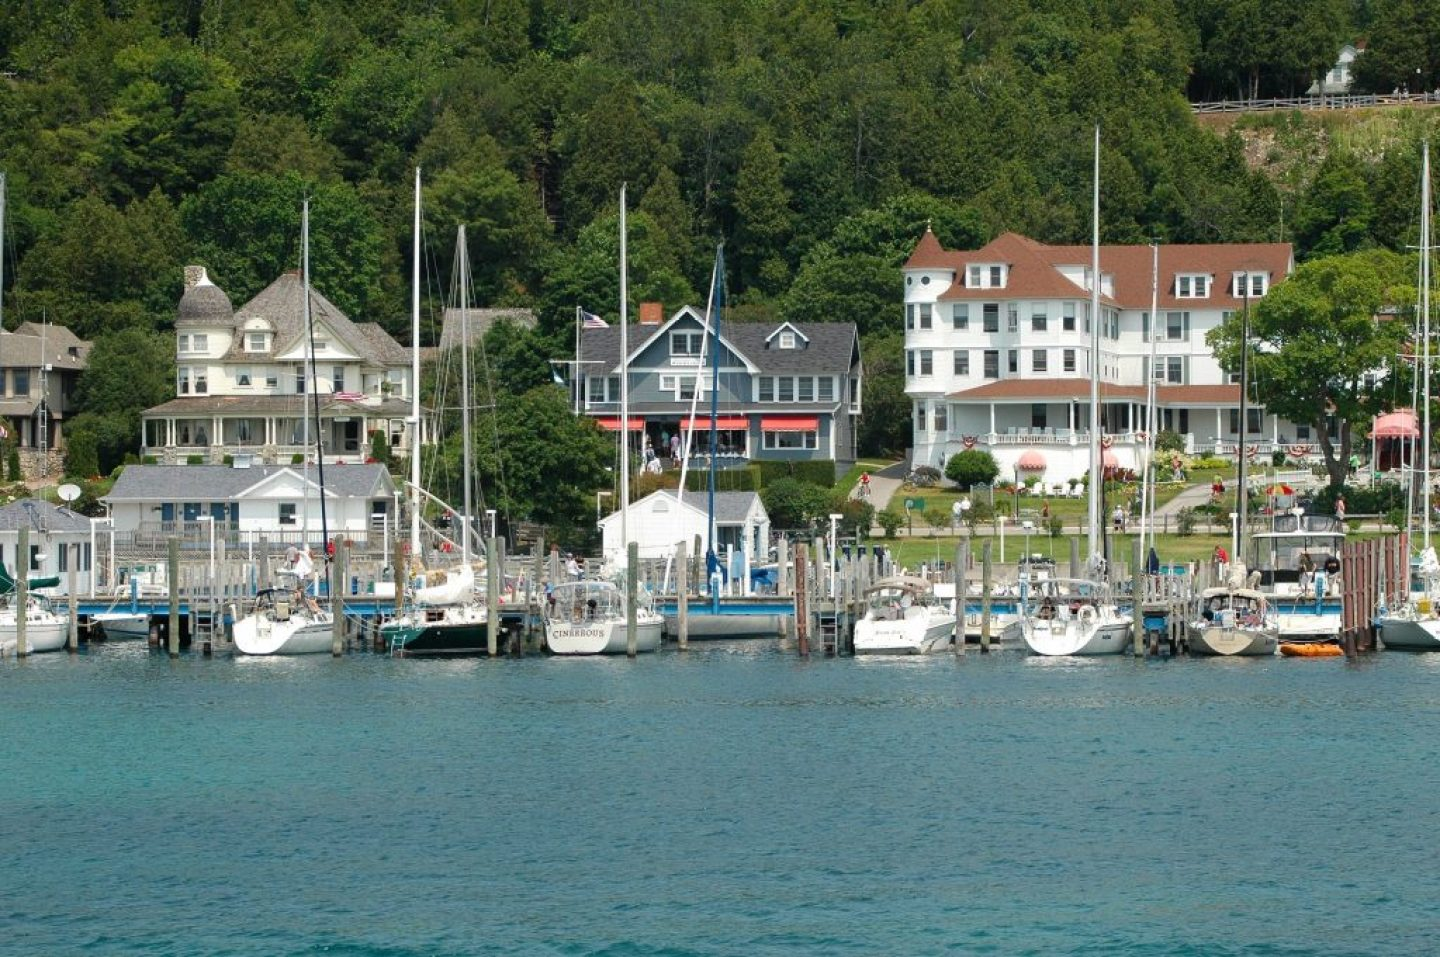 Ferry to Mackinac Island. A first timers guide on how to get there, which one to take, how to get tickets, and schedules.